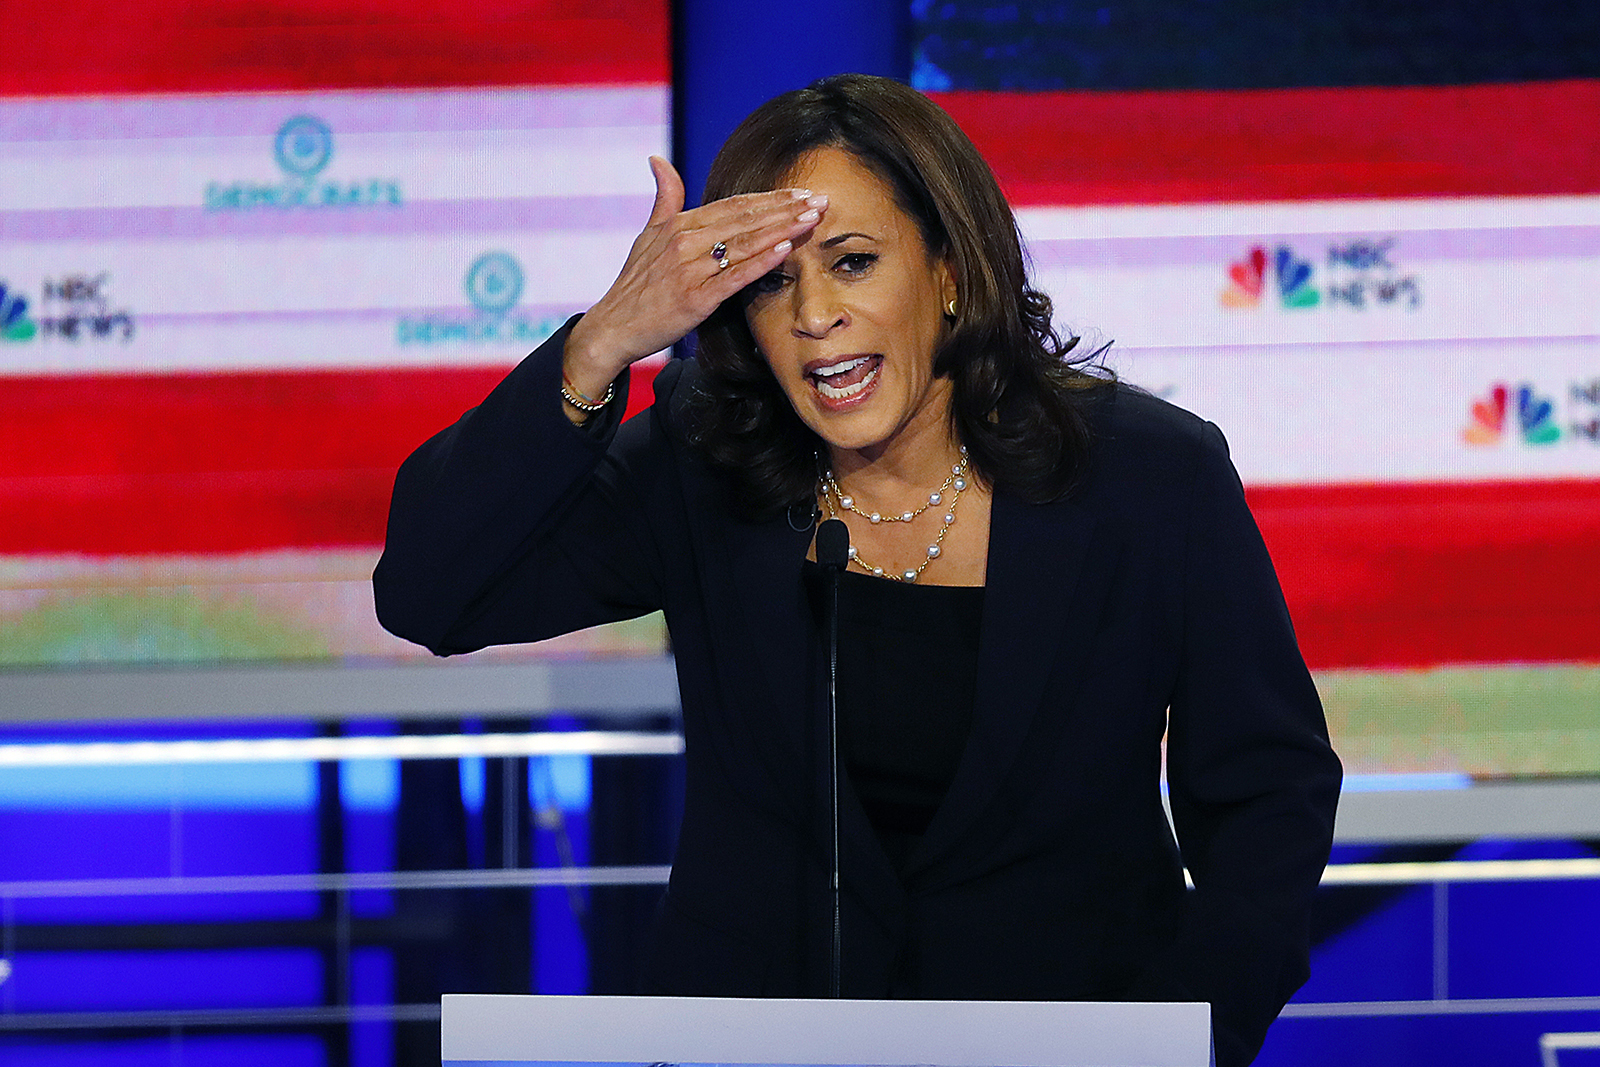 Sikh Activists Ask Kamala Harris For Apology Over Beard Ban For California Prison Guards